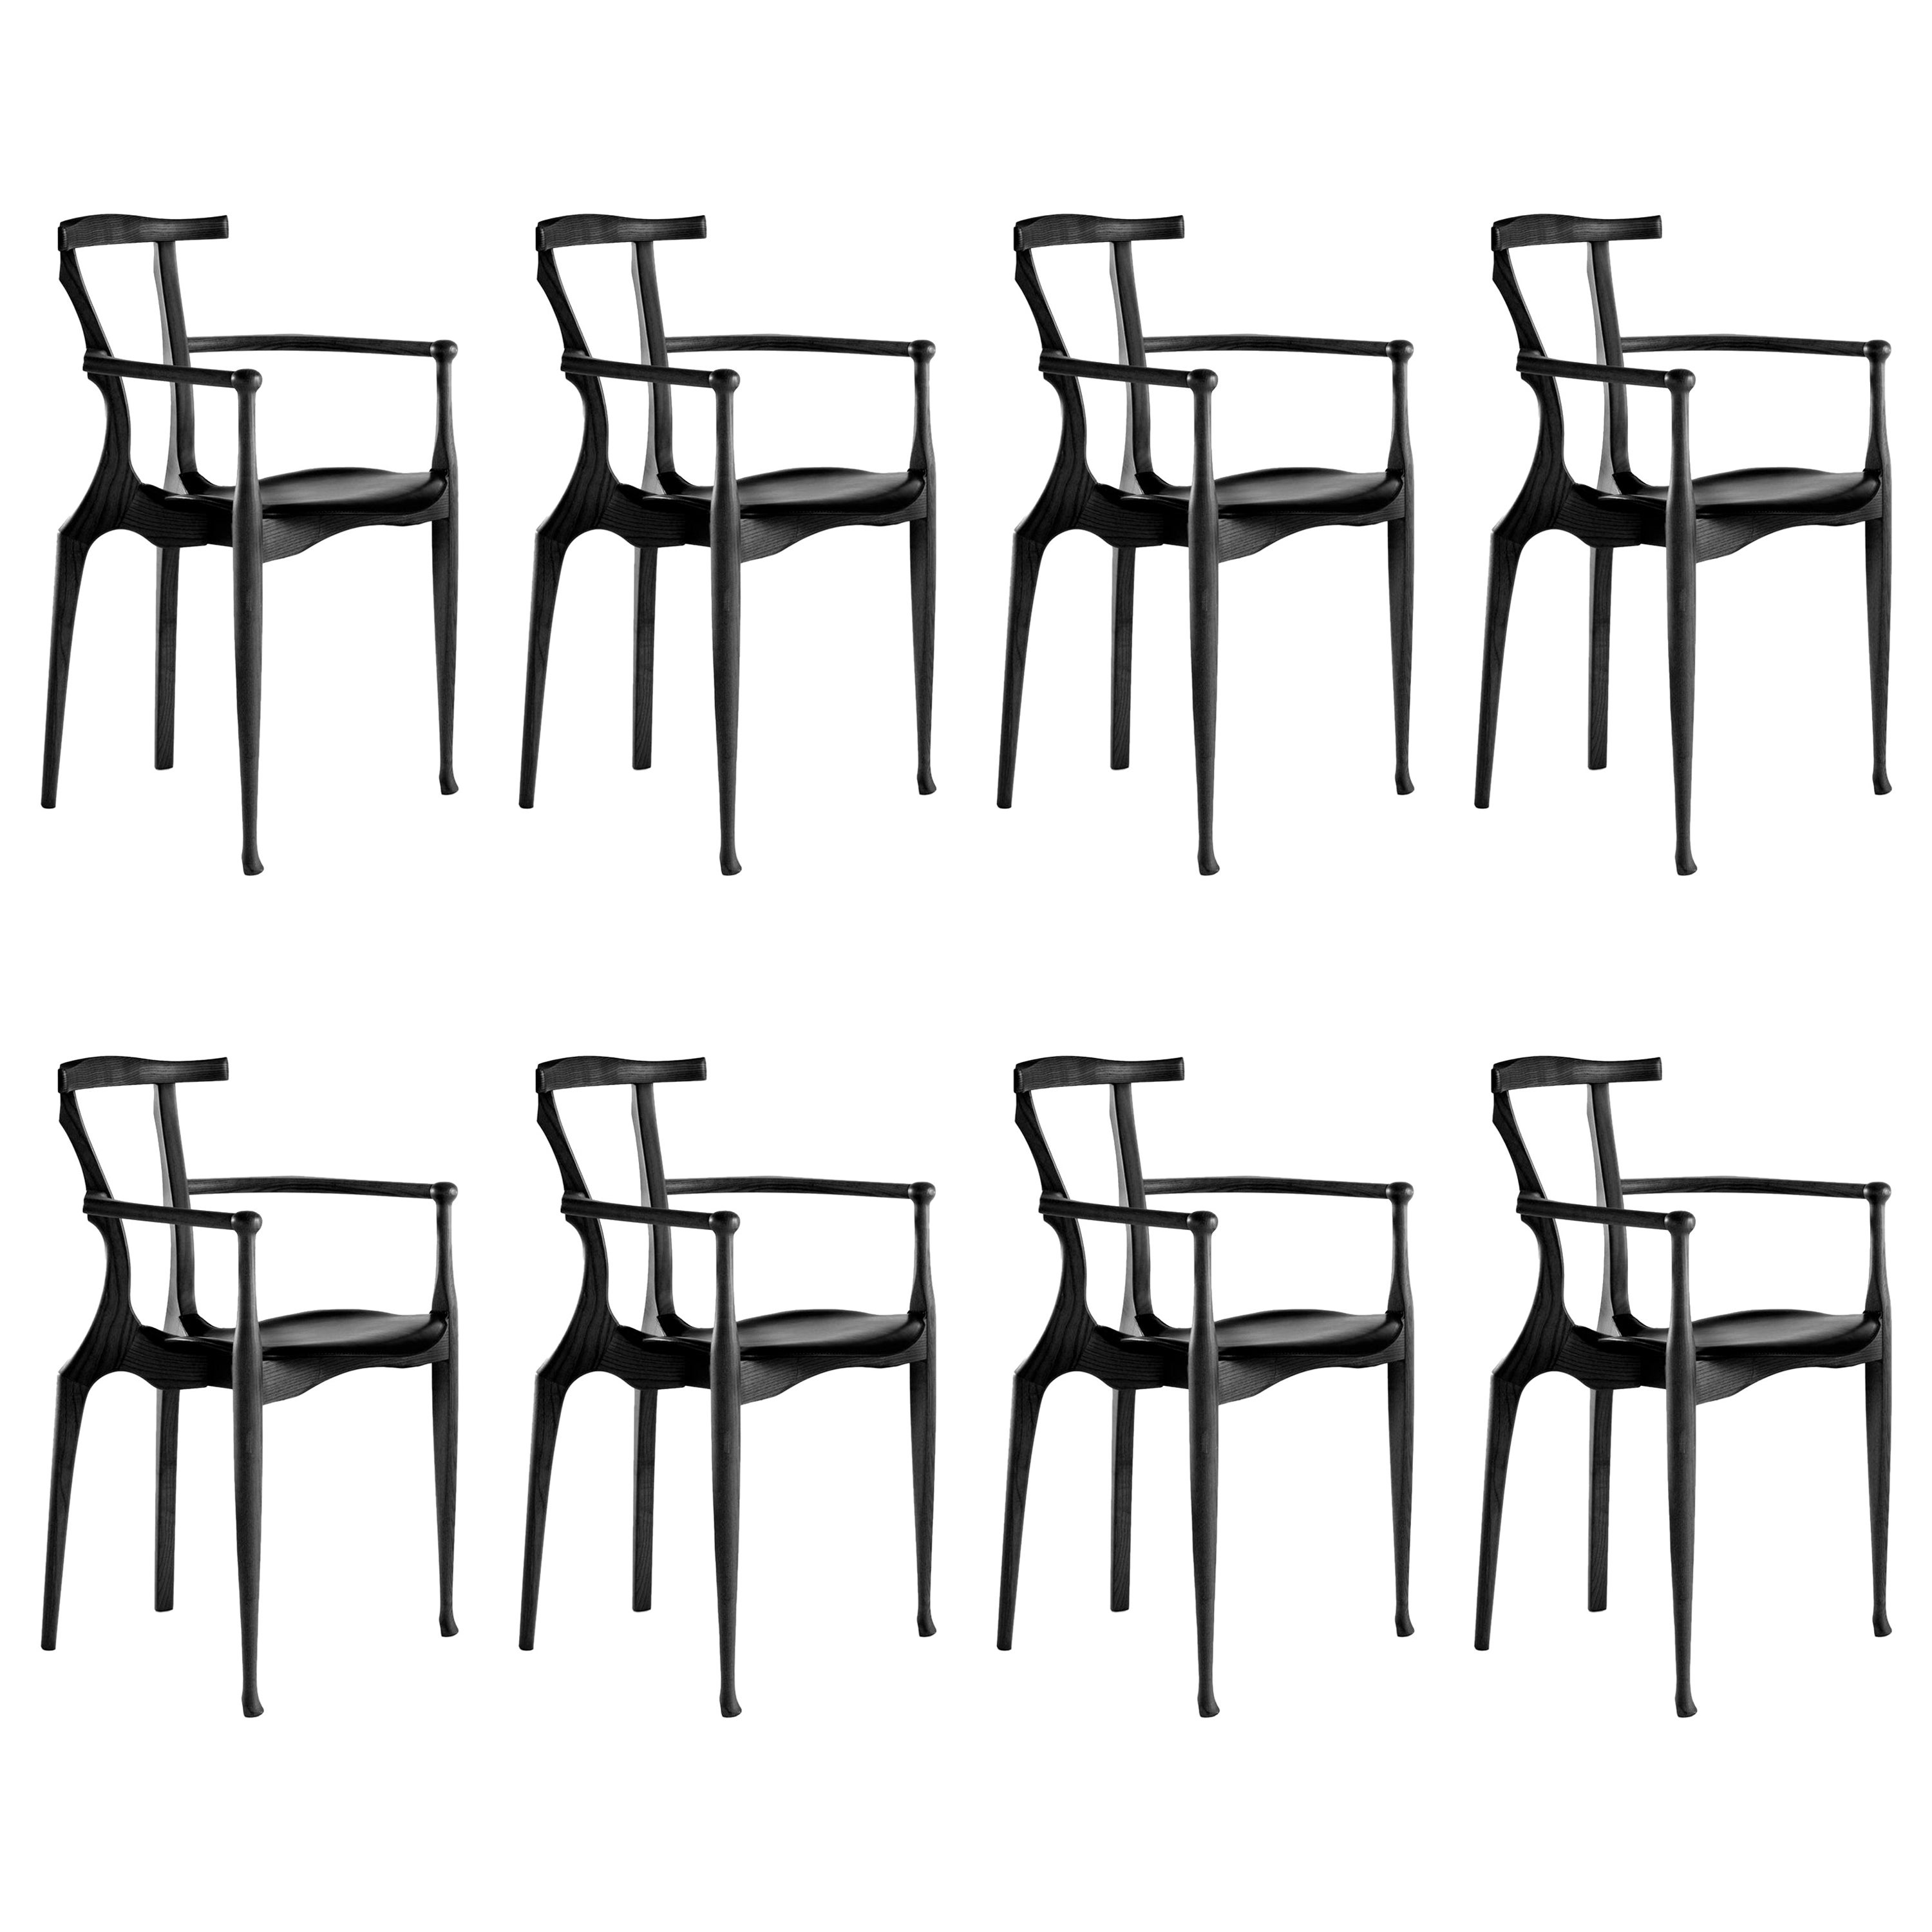 Set of 8 Black Gaulino Chairs Chair by Oscar Tusquets